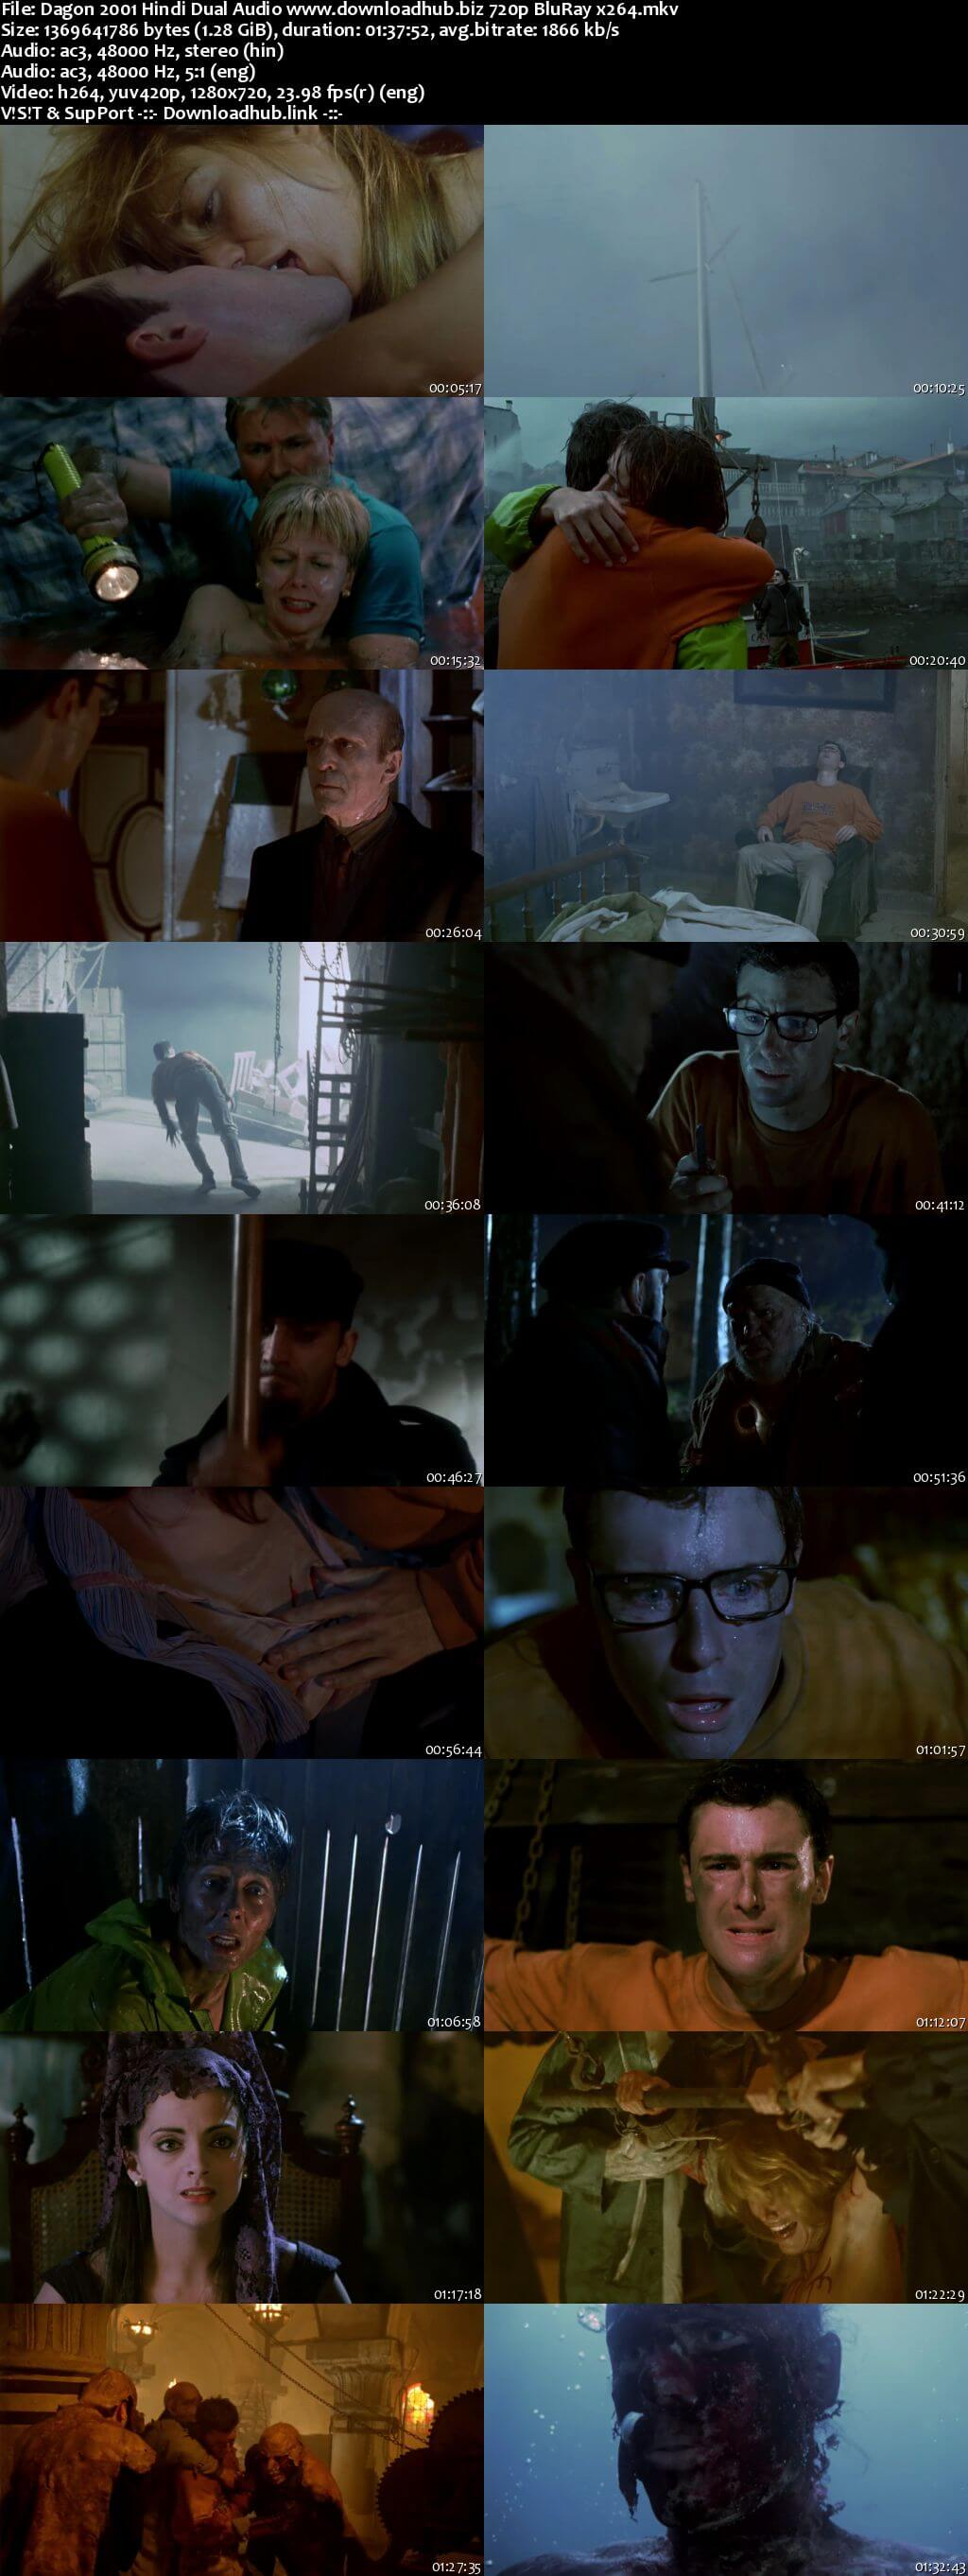 Dagon 2001 Hindi Dual Audio 720p BluRay x264